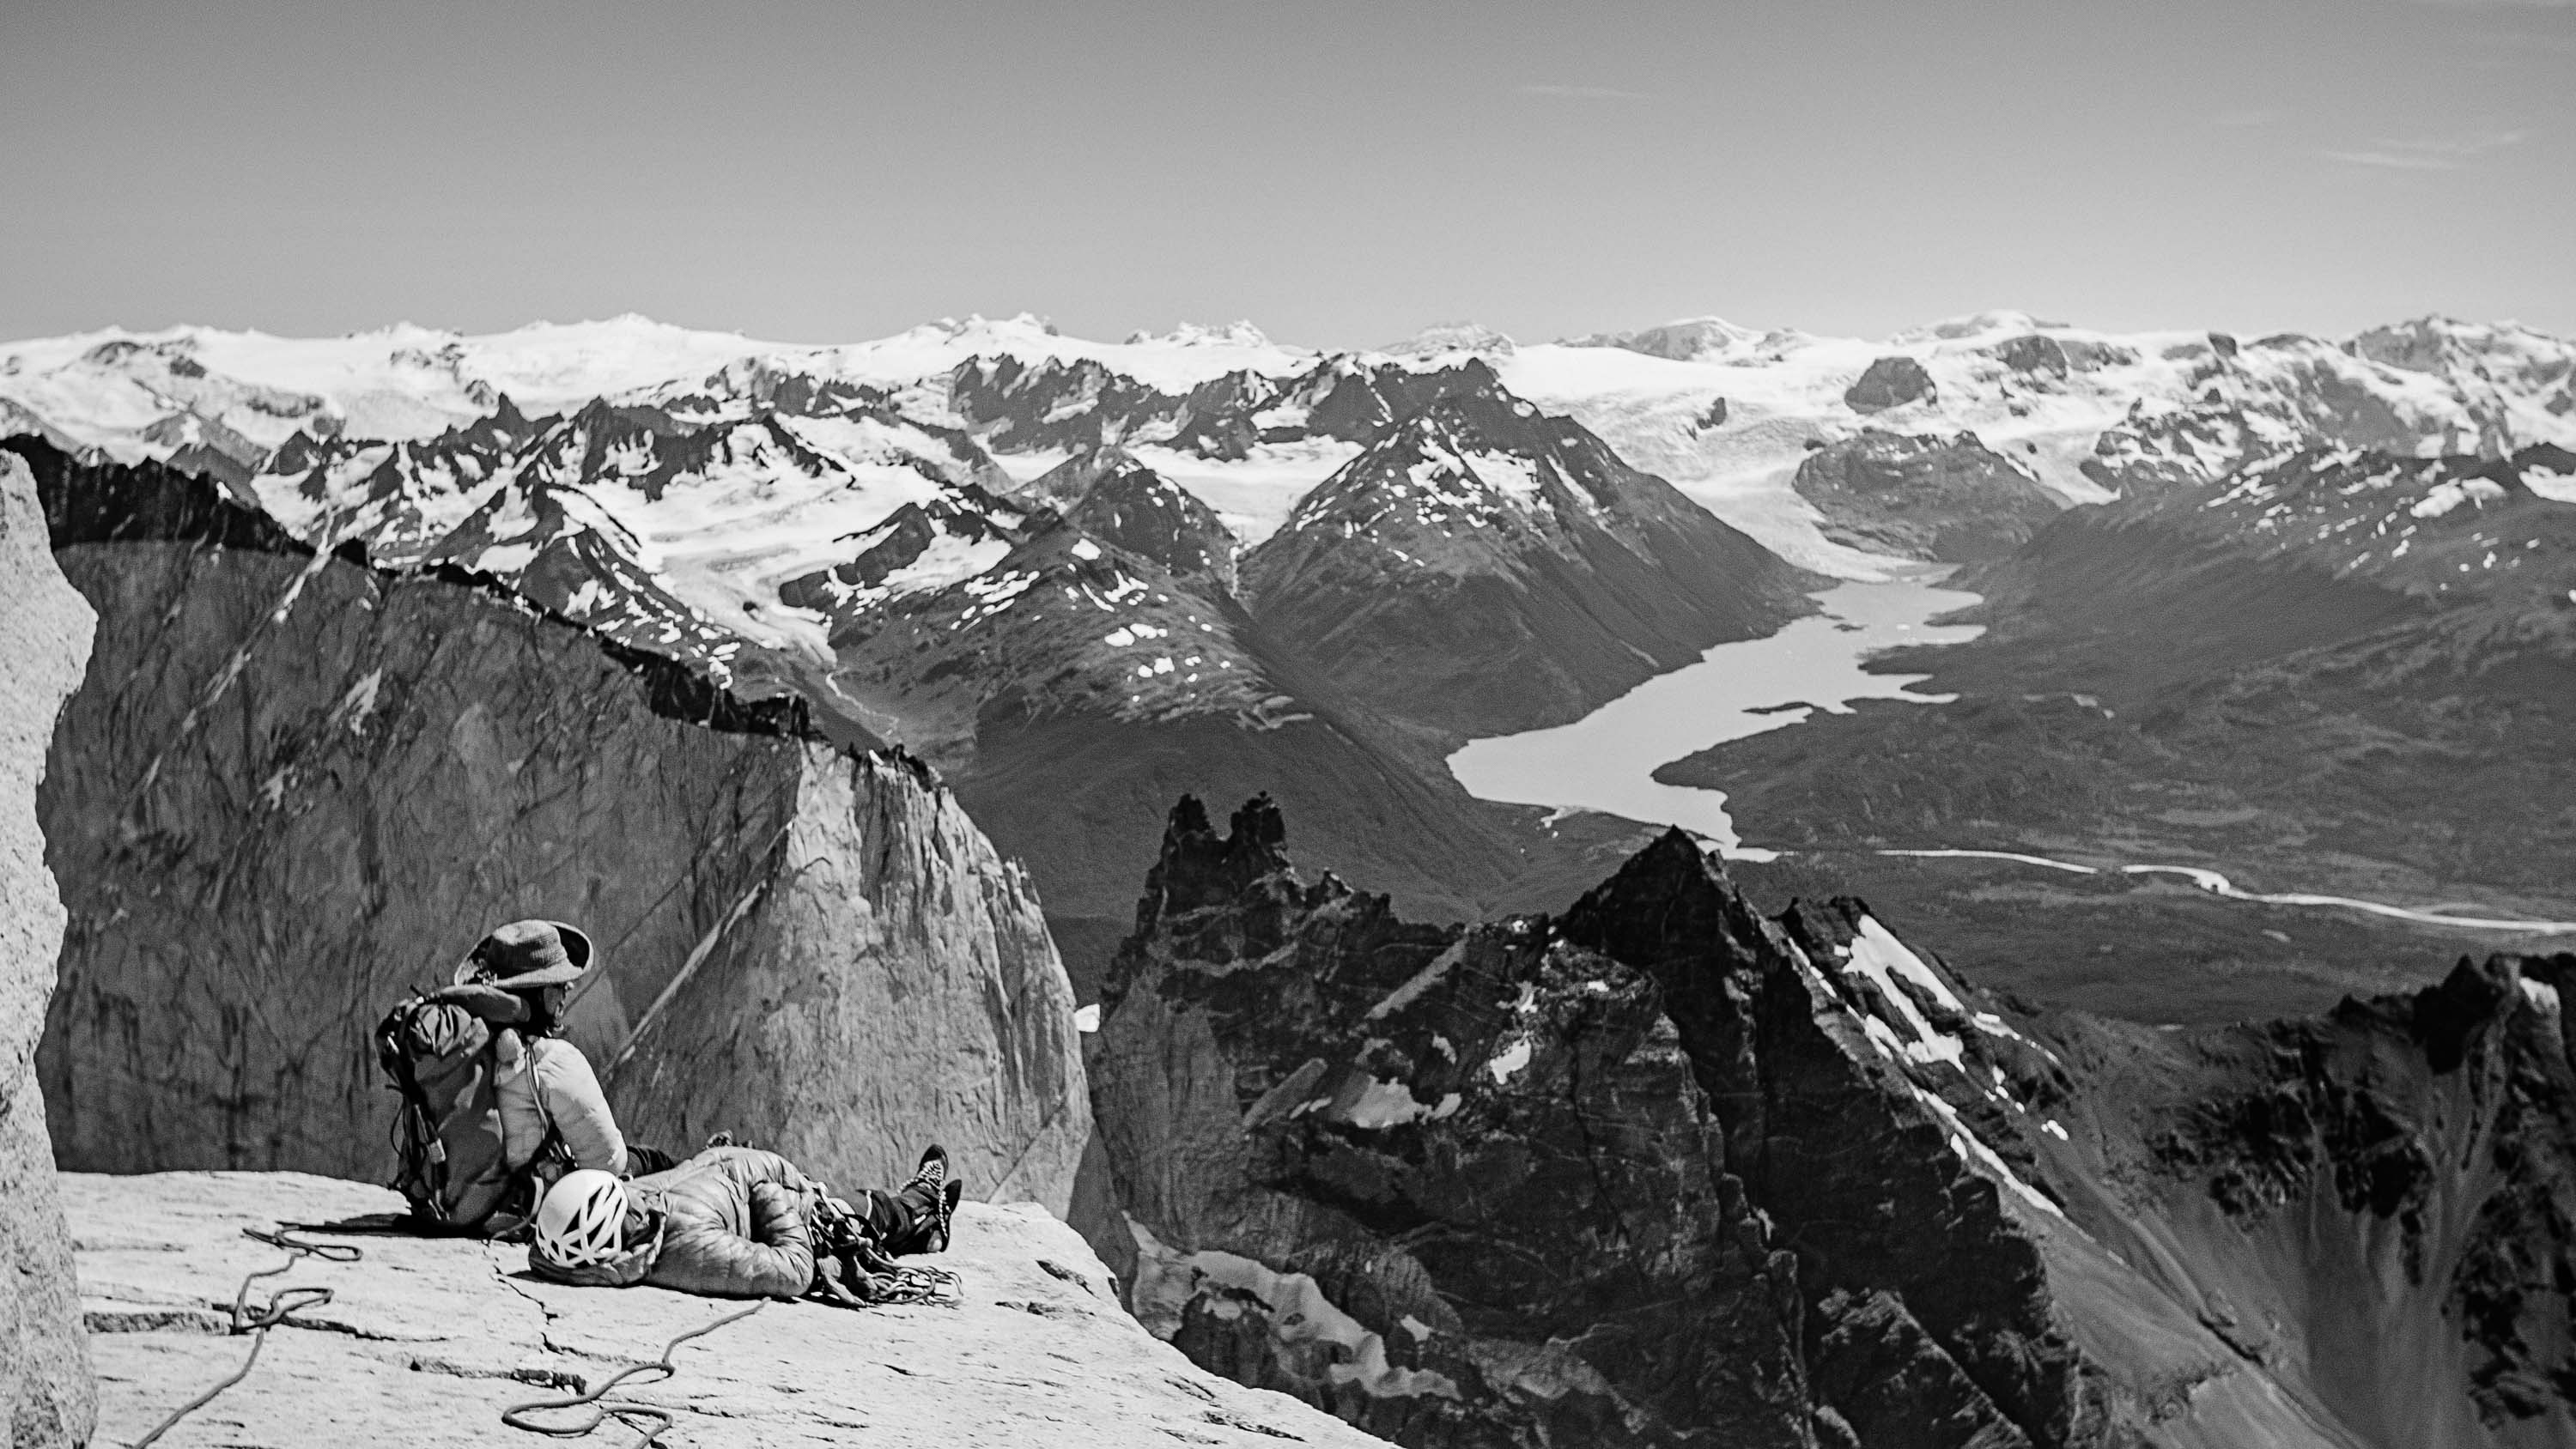 Ines Papert and Mayan Smith-Gobat on top of Torre Central after their climb of the route riders on the storm. PHOTO: THOMAS SENF